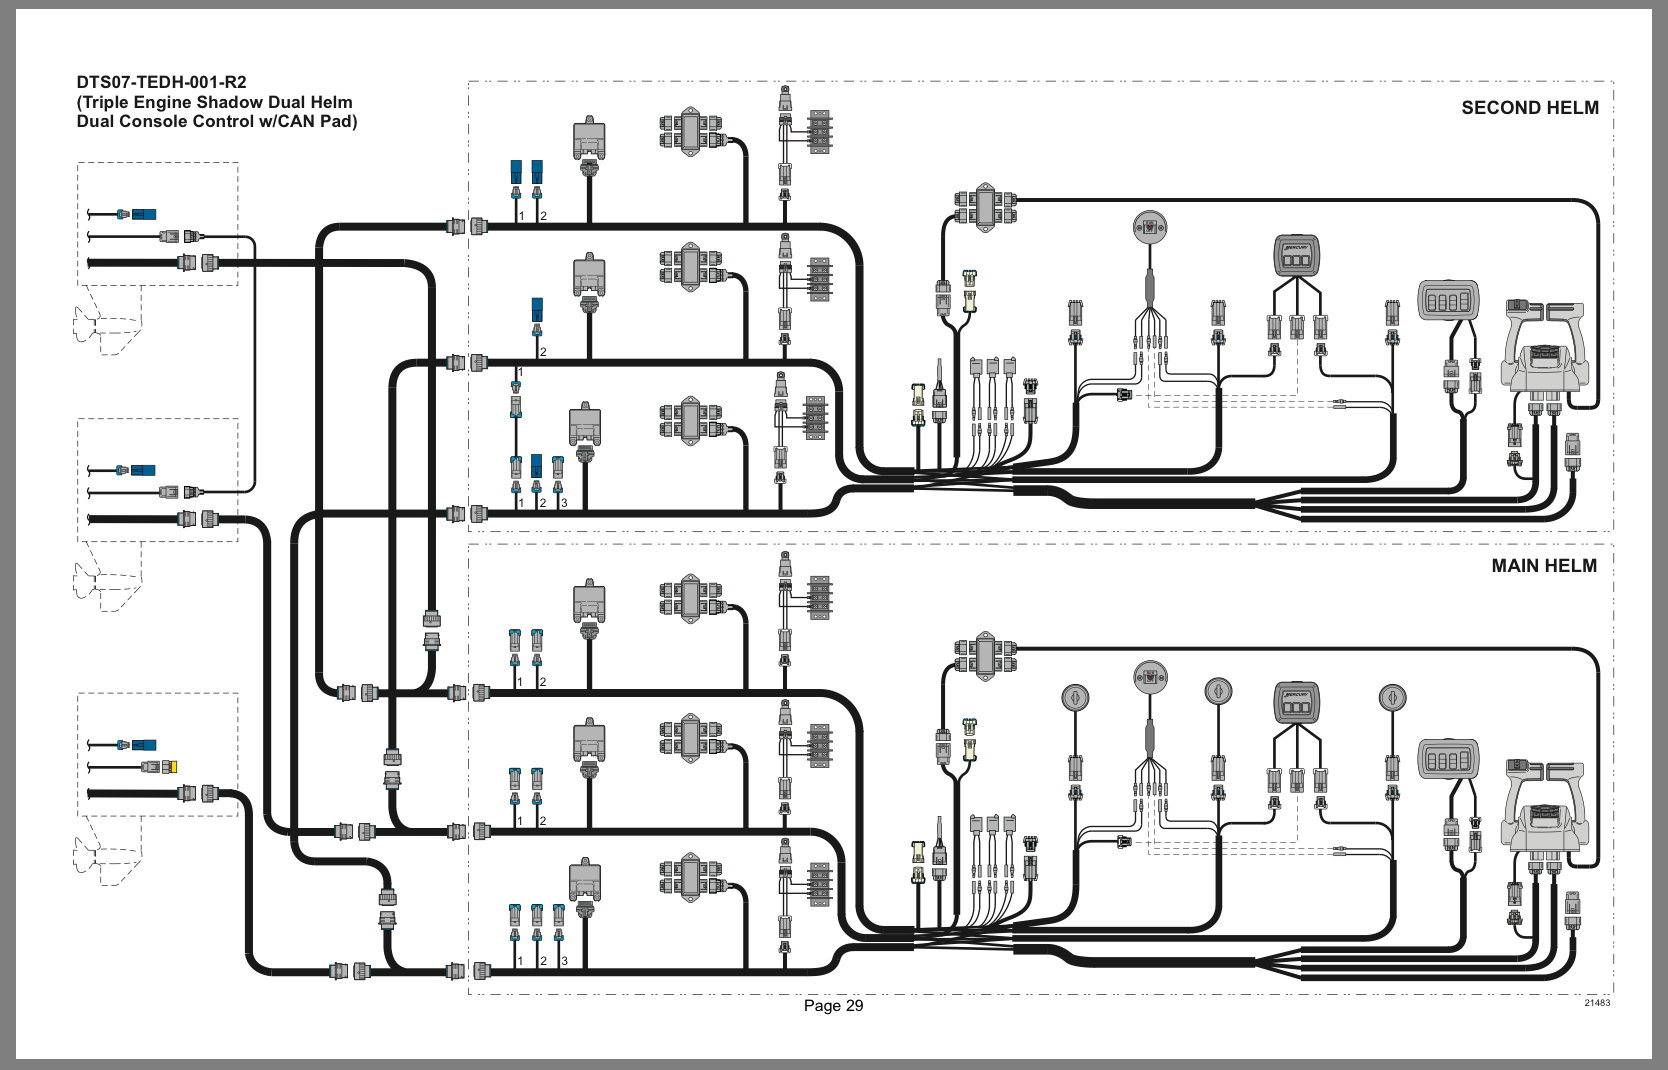 hight resolution of here is a diagram of your dts rigging triple engine dual station i don t have any access to the colored wiring harness diagrams online